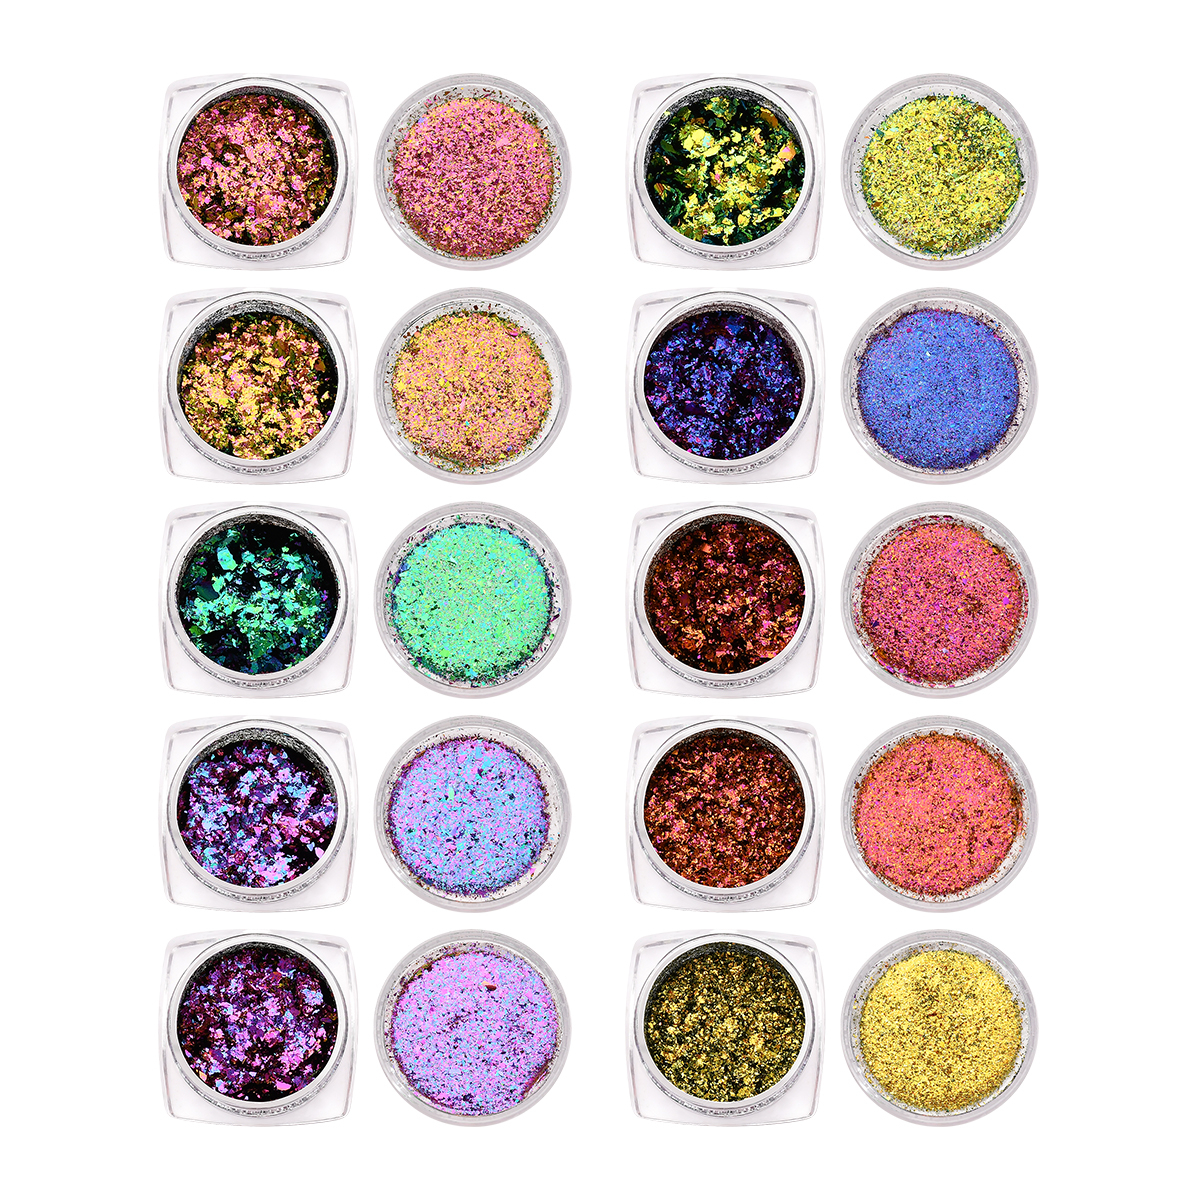 BeautyBigBang 0.1g Chameleon Effect Flake Nails Art Accessories Sequins Mirror Powder Chrome Pigment Holographic Glitter